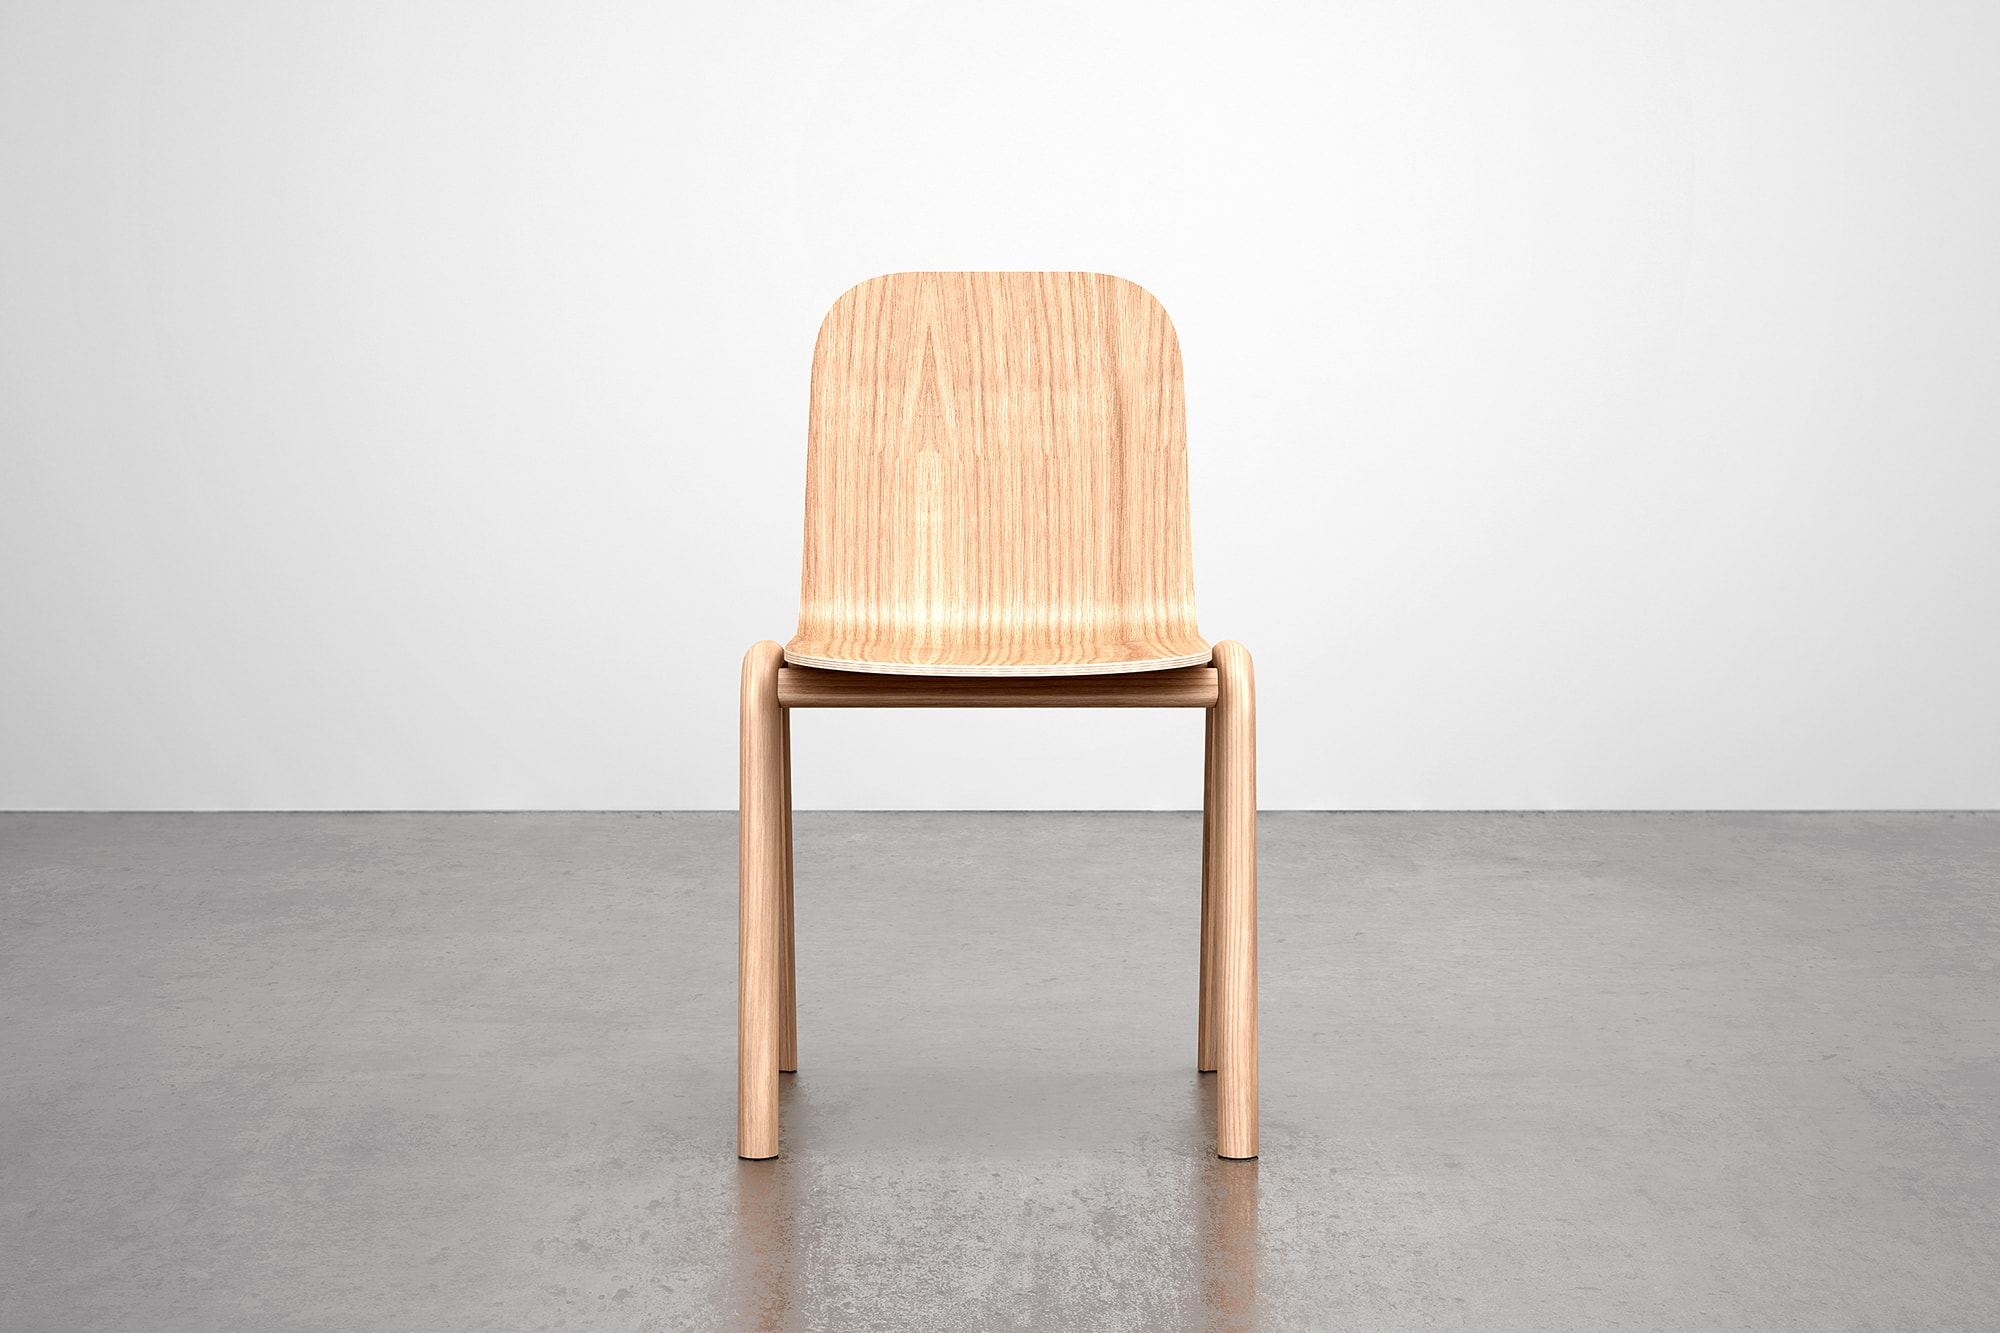 Front view of Oak Chair. The chair is made using steam bent wood.